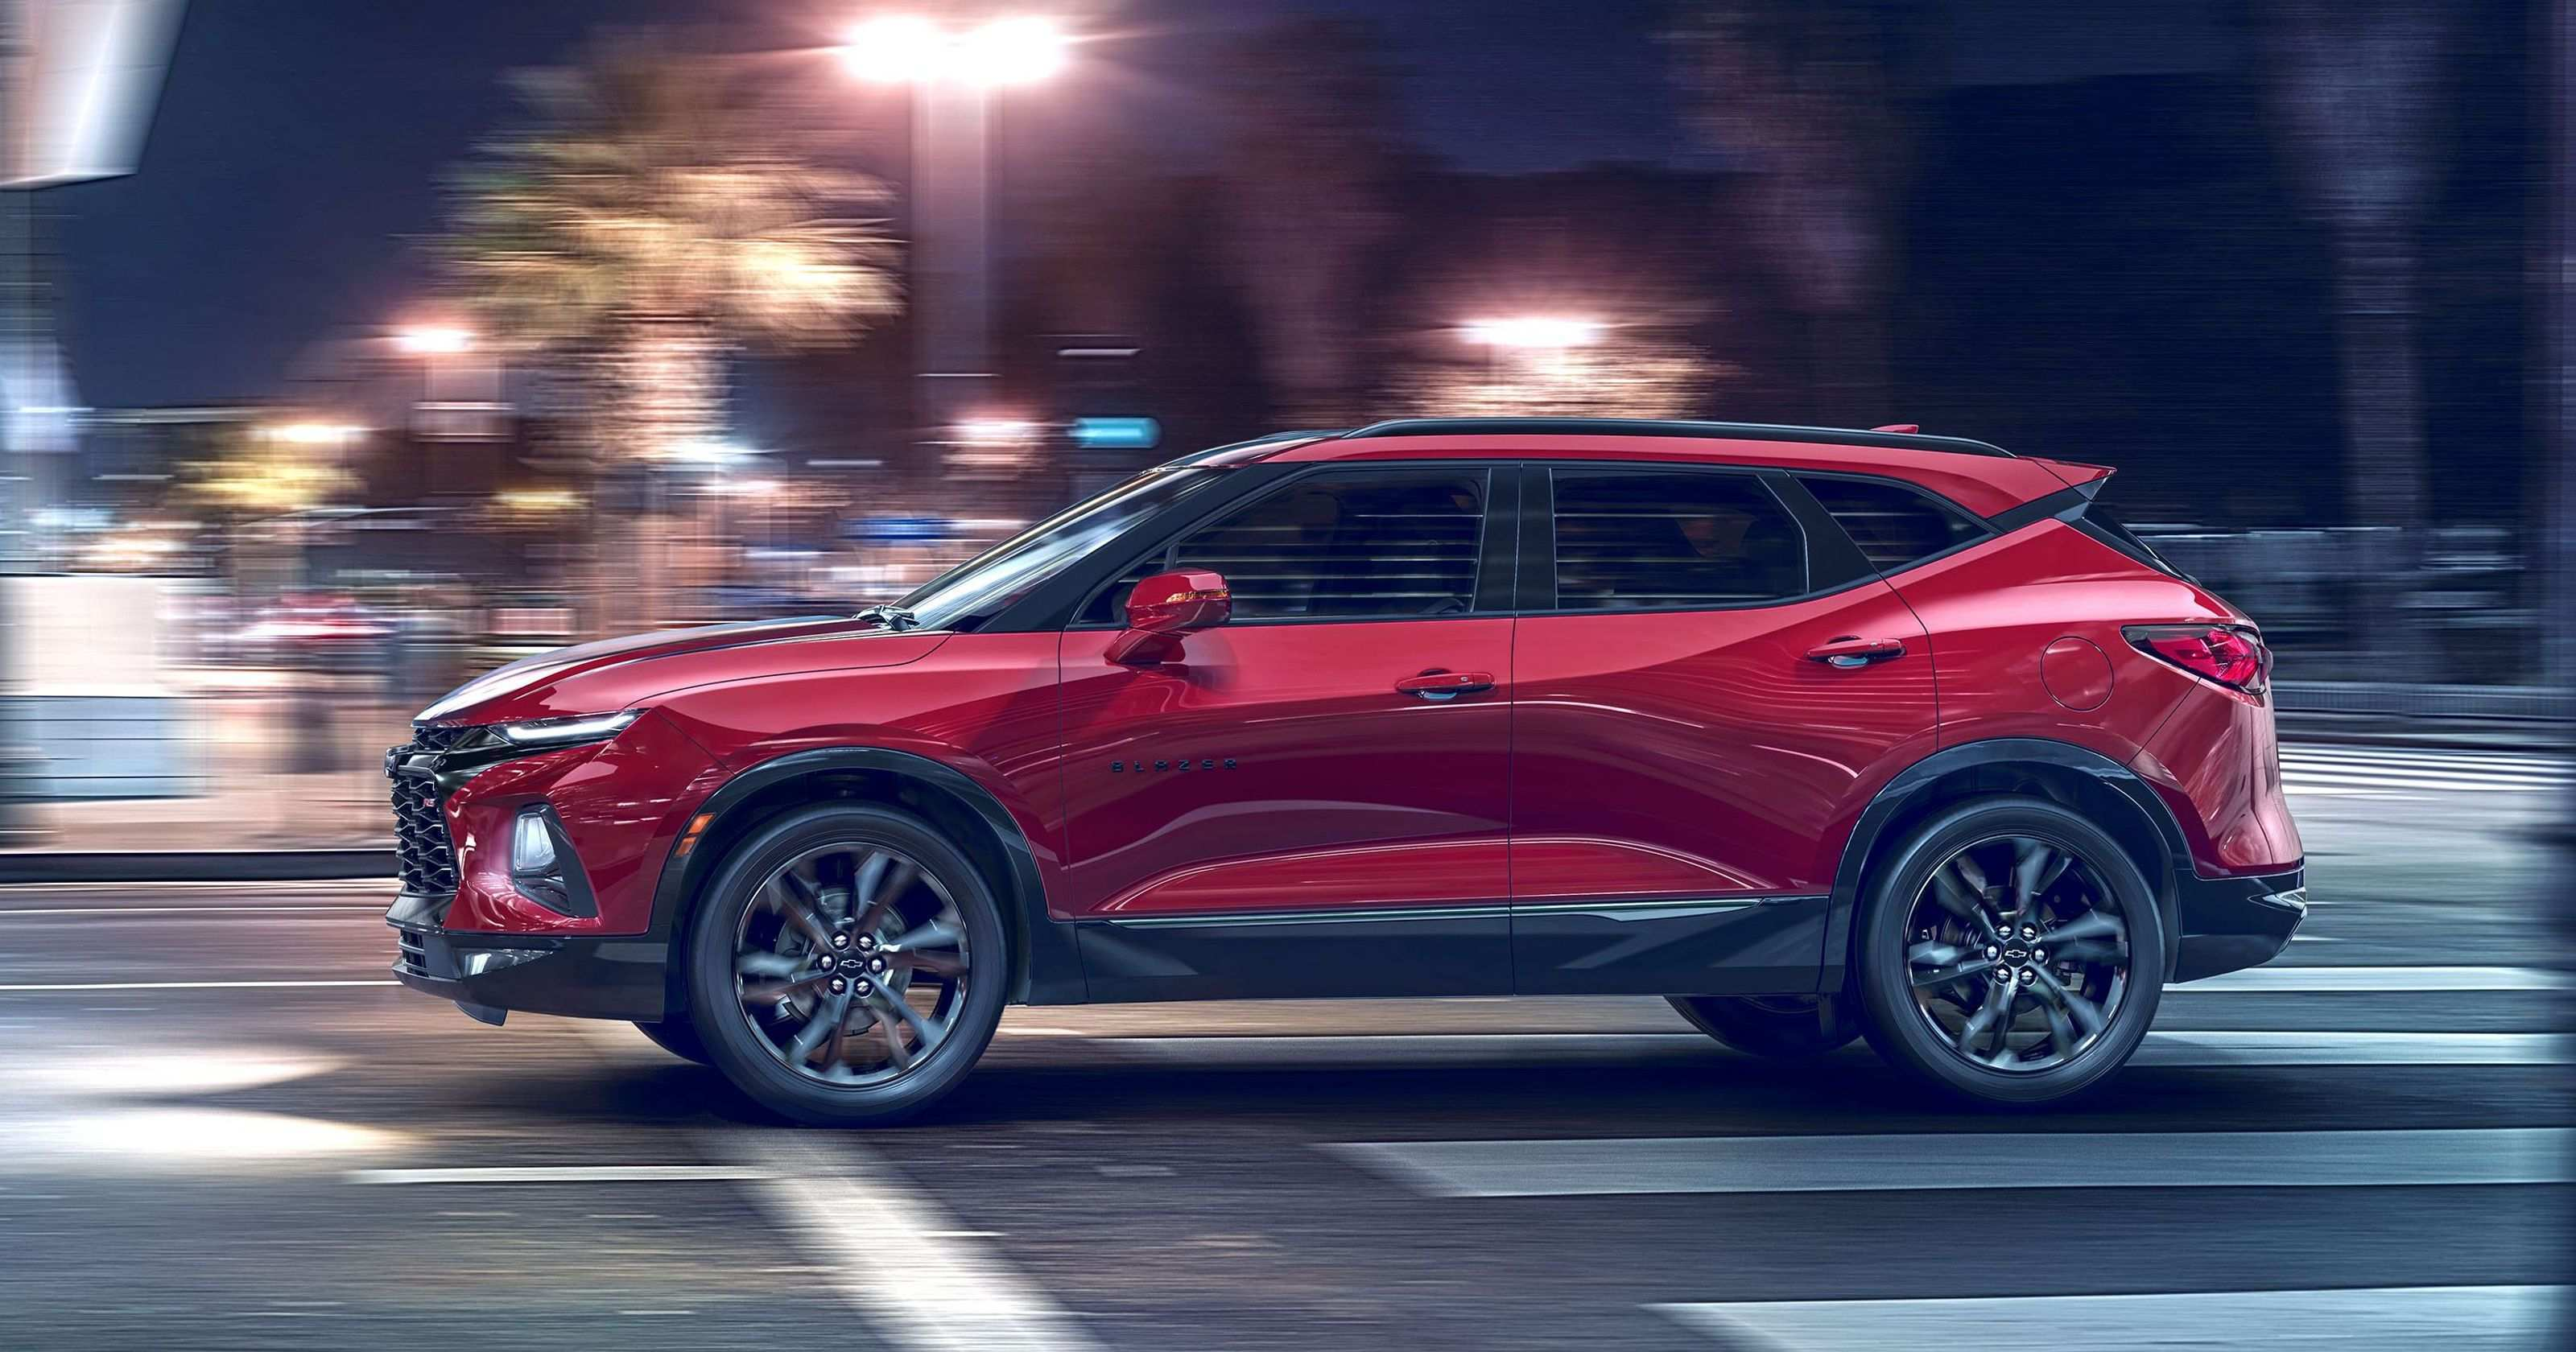 24 Concept of 2019 Chevrolet Blazer Release Date Wallpaper for 2019 Chevrolet Blazer Release Date